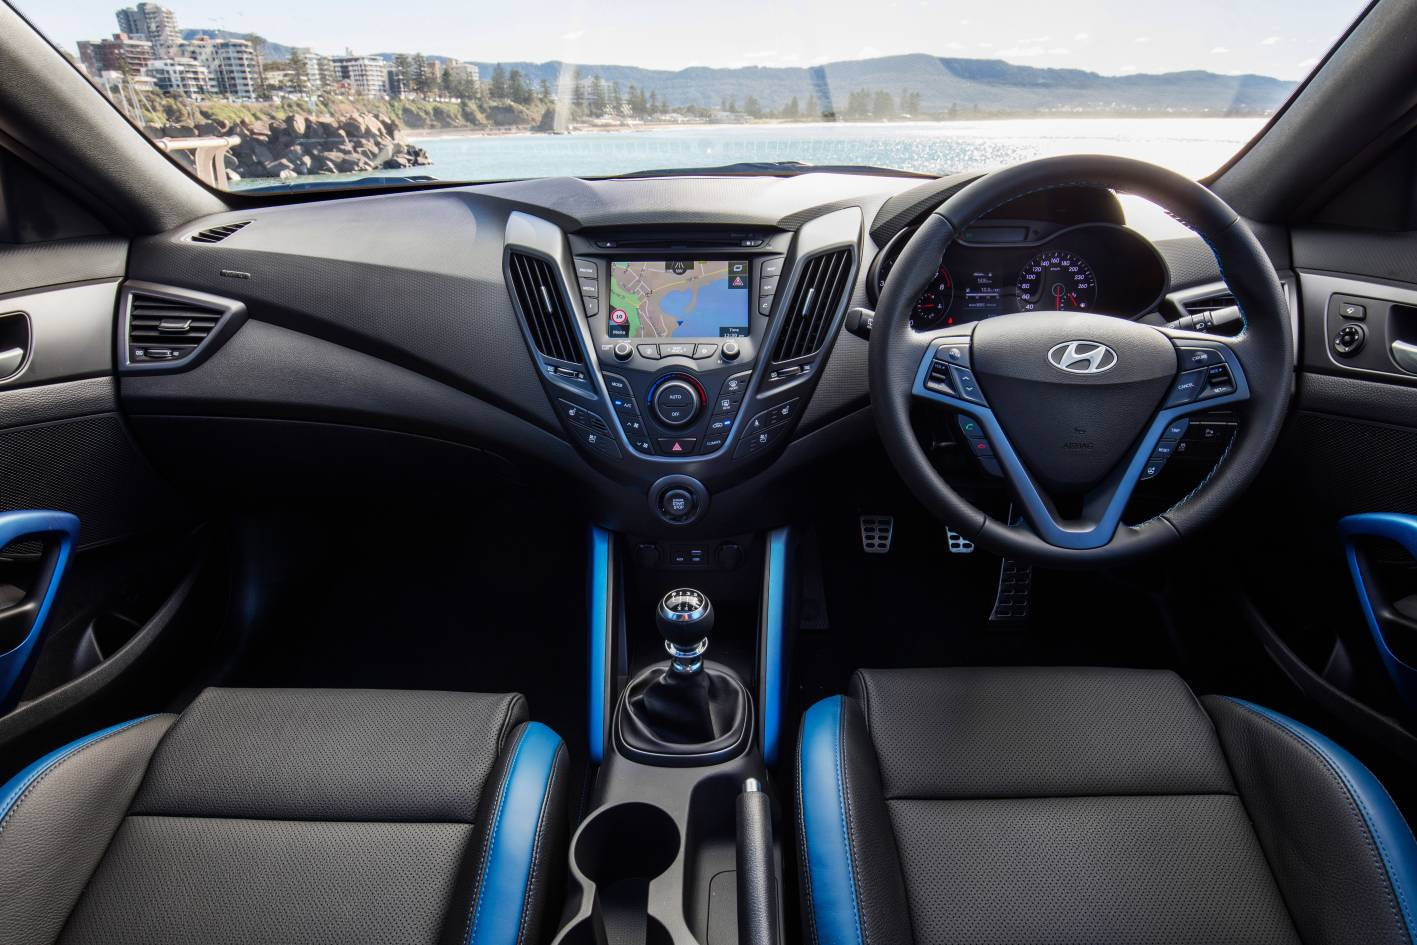 Awesome 2016 Hyundai Veloster SR Turbo Street Interior Pictures